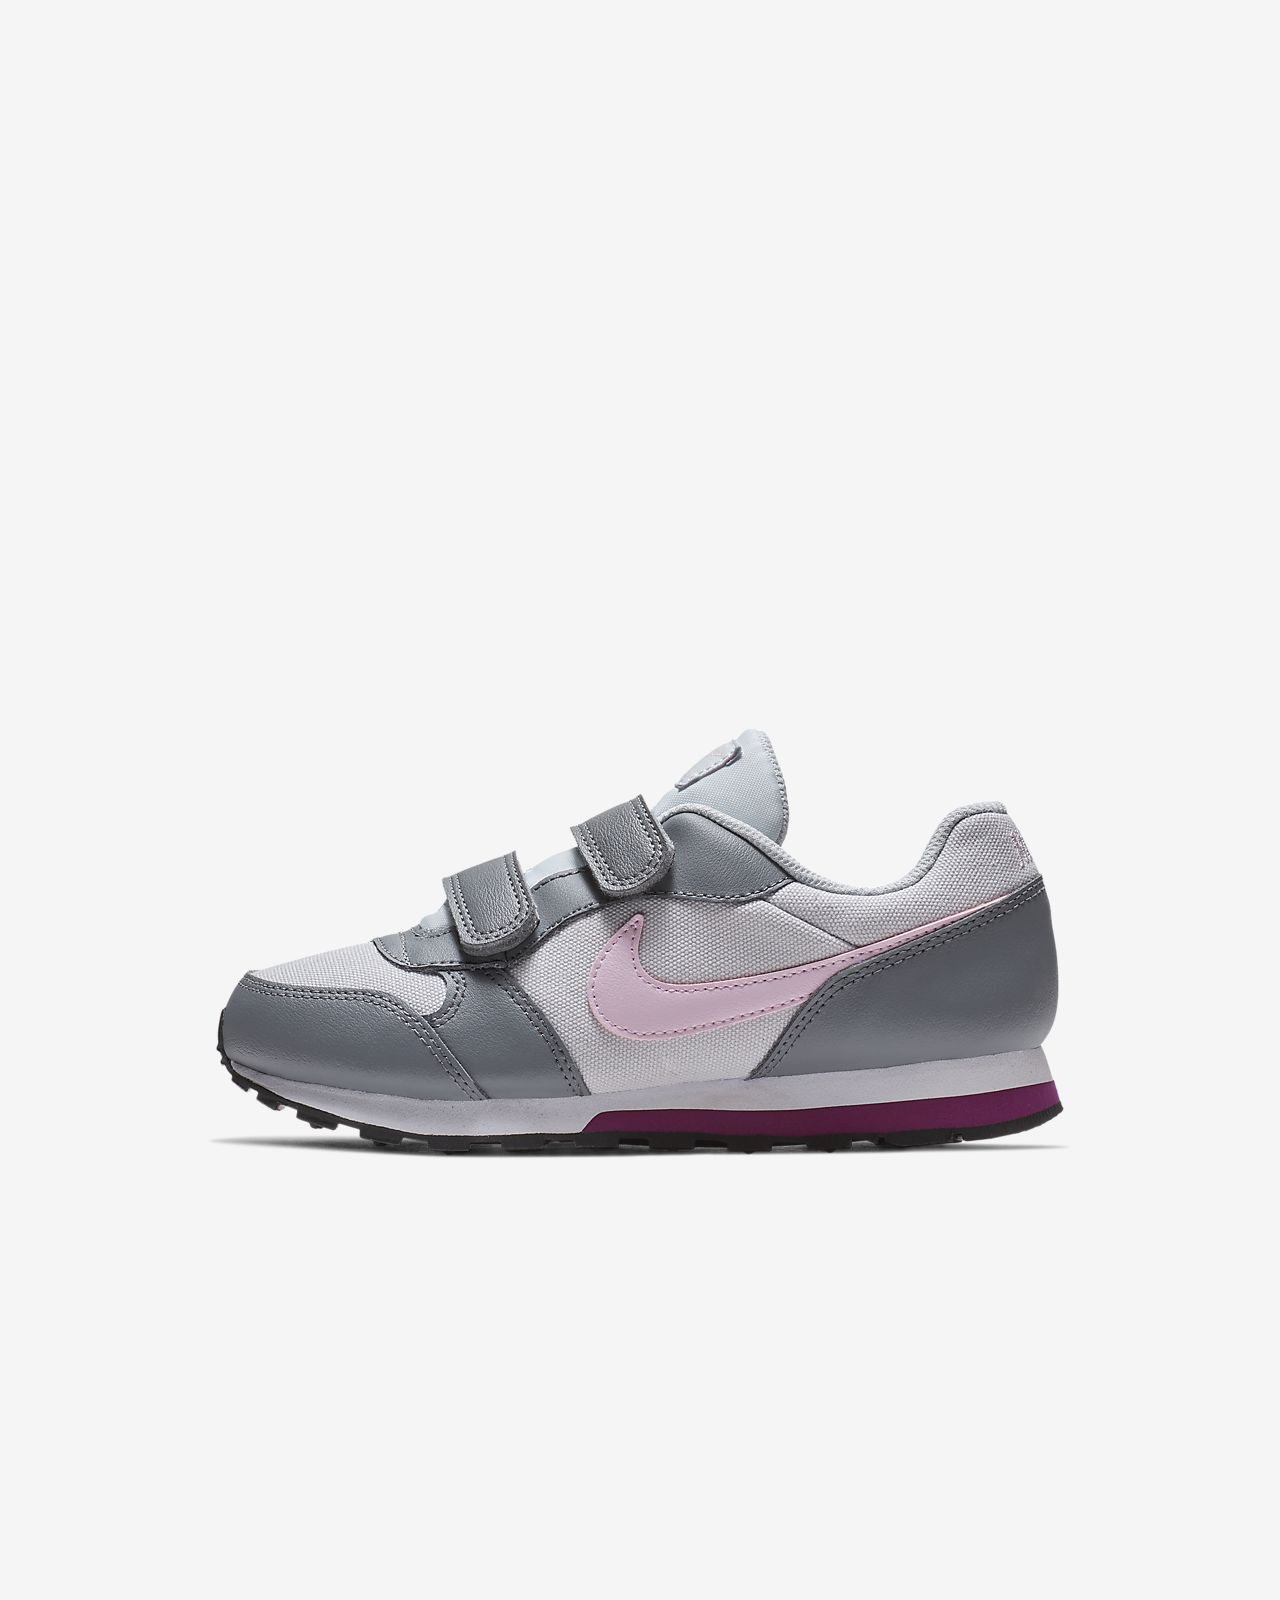 Jeune Nike Enfant Pour Runner 2 Md Chaussure P0O8nkw